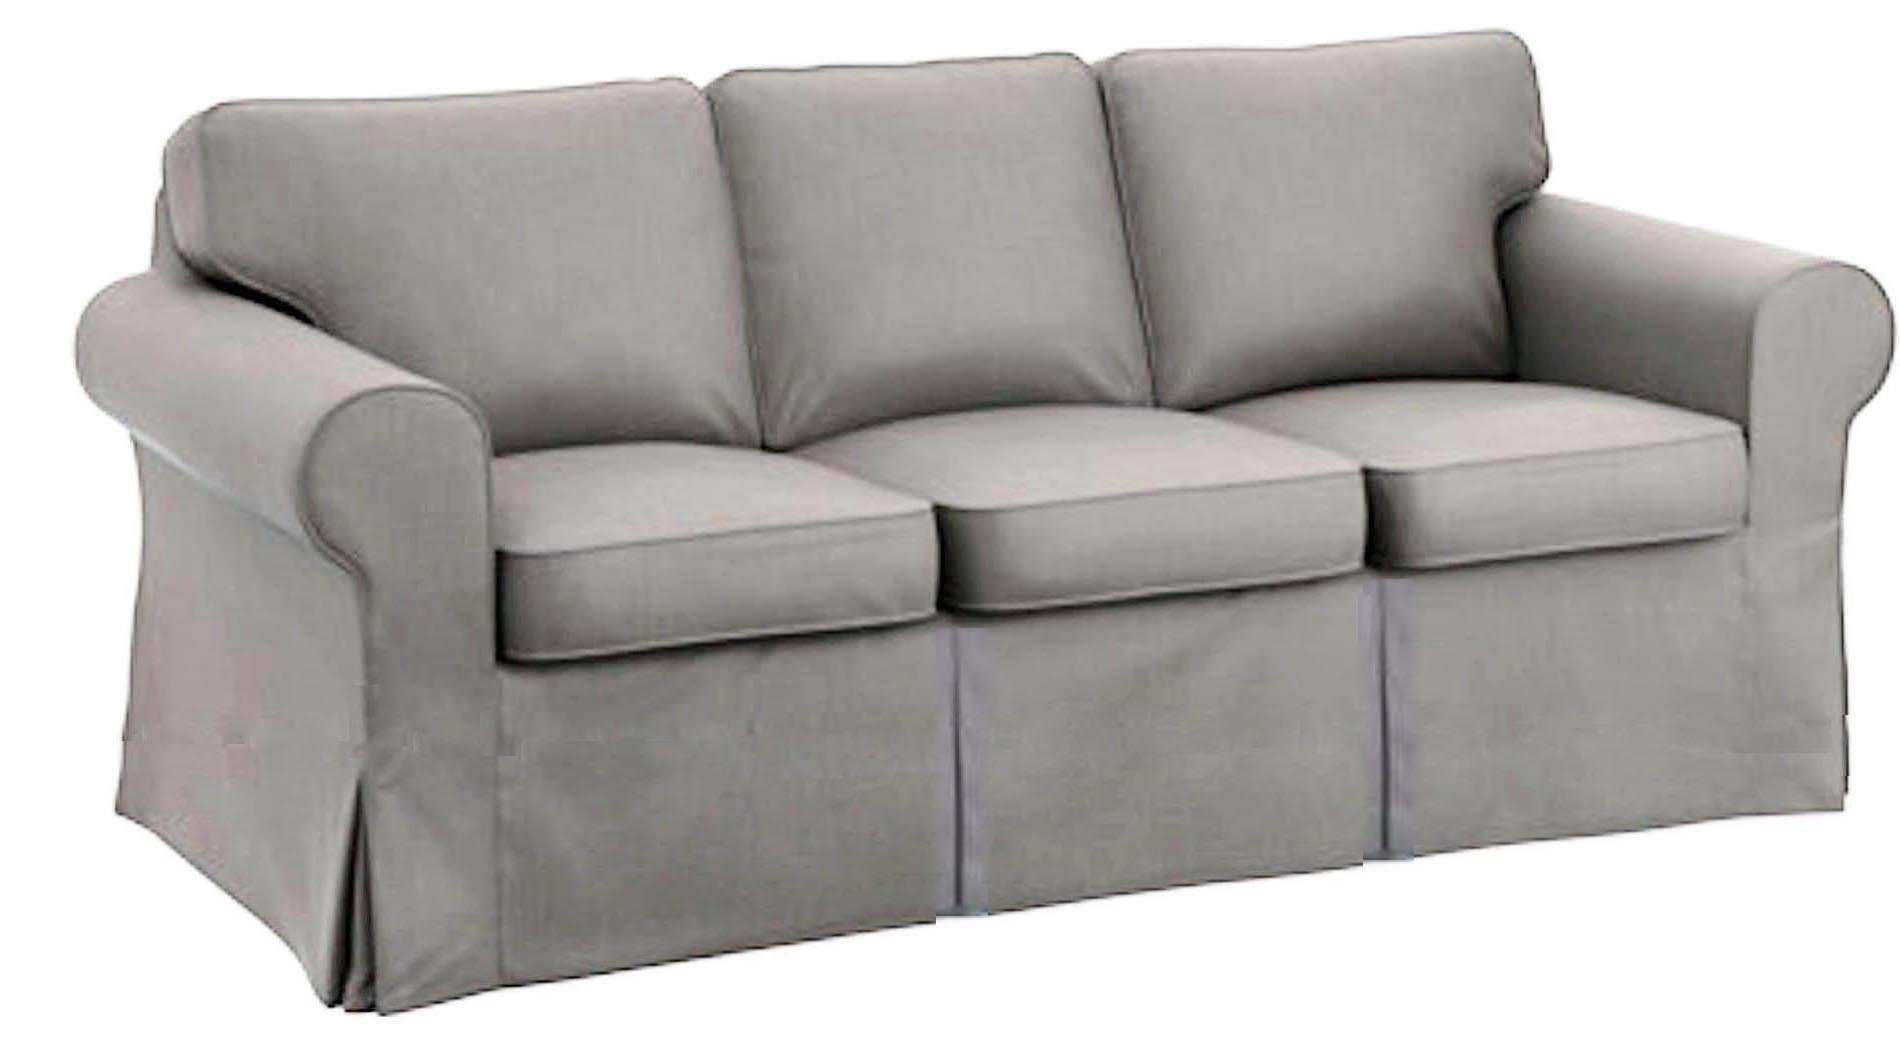 The Sofa Cover Is 3 Seat Sofa Slipcover Replacement. It Fits Pottery Barn PB Basic Three Seat Sofa (Cotton Light Gray)